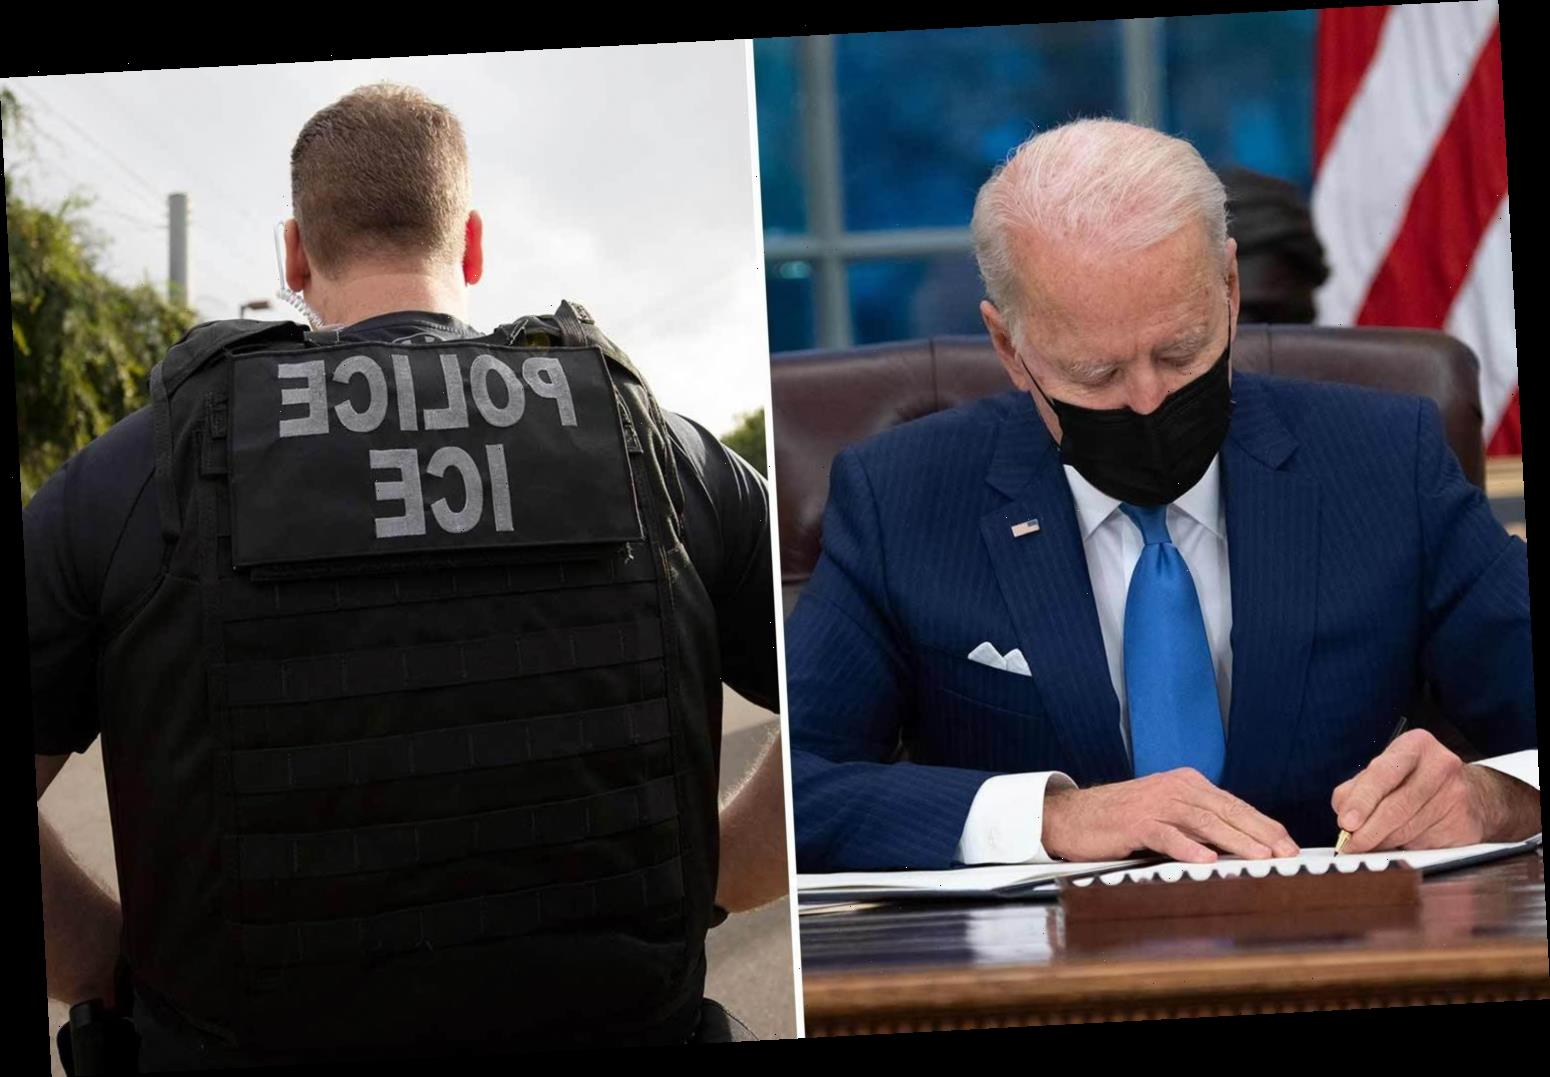 Biden admin 'planning to limit ICE immigration arrests & deportations' after signing exec orders to shred Trump policies